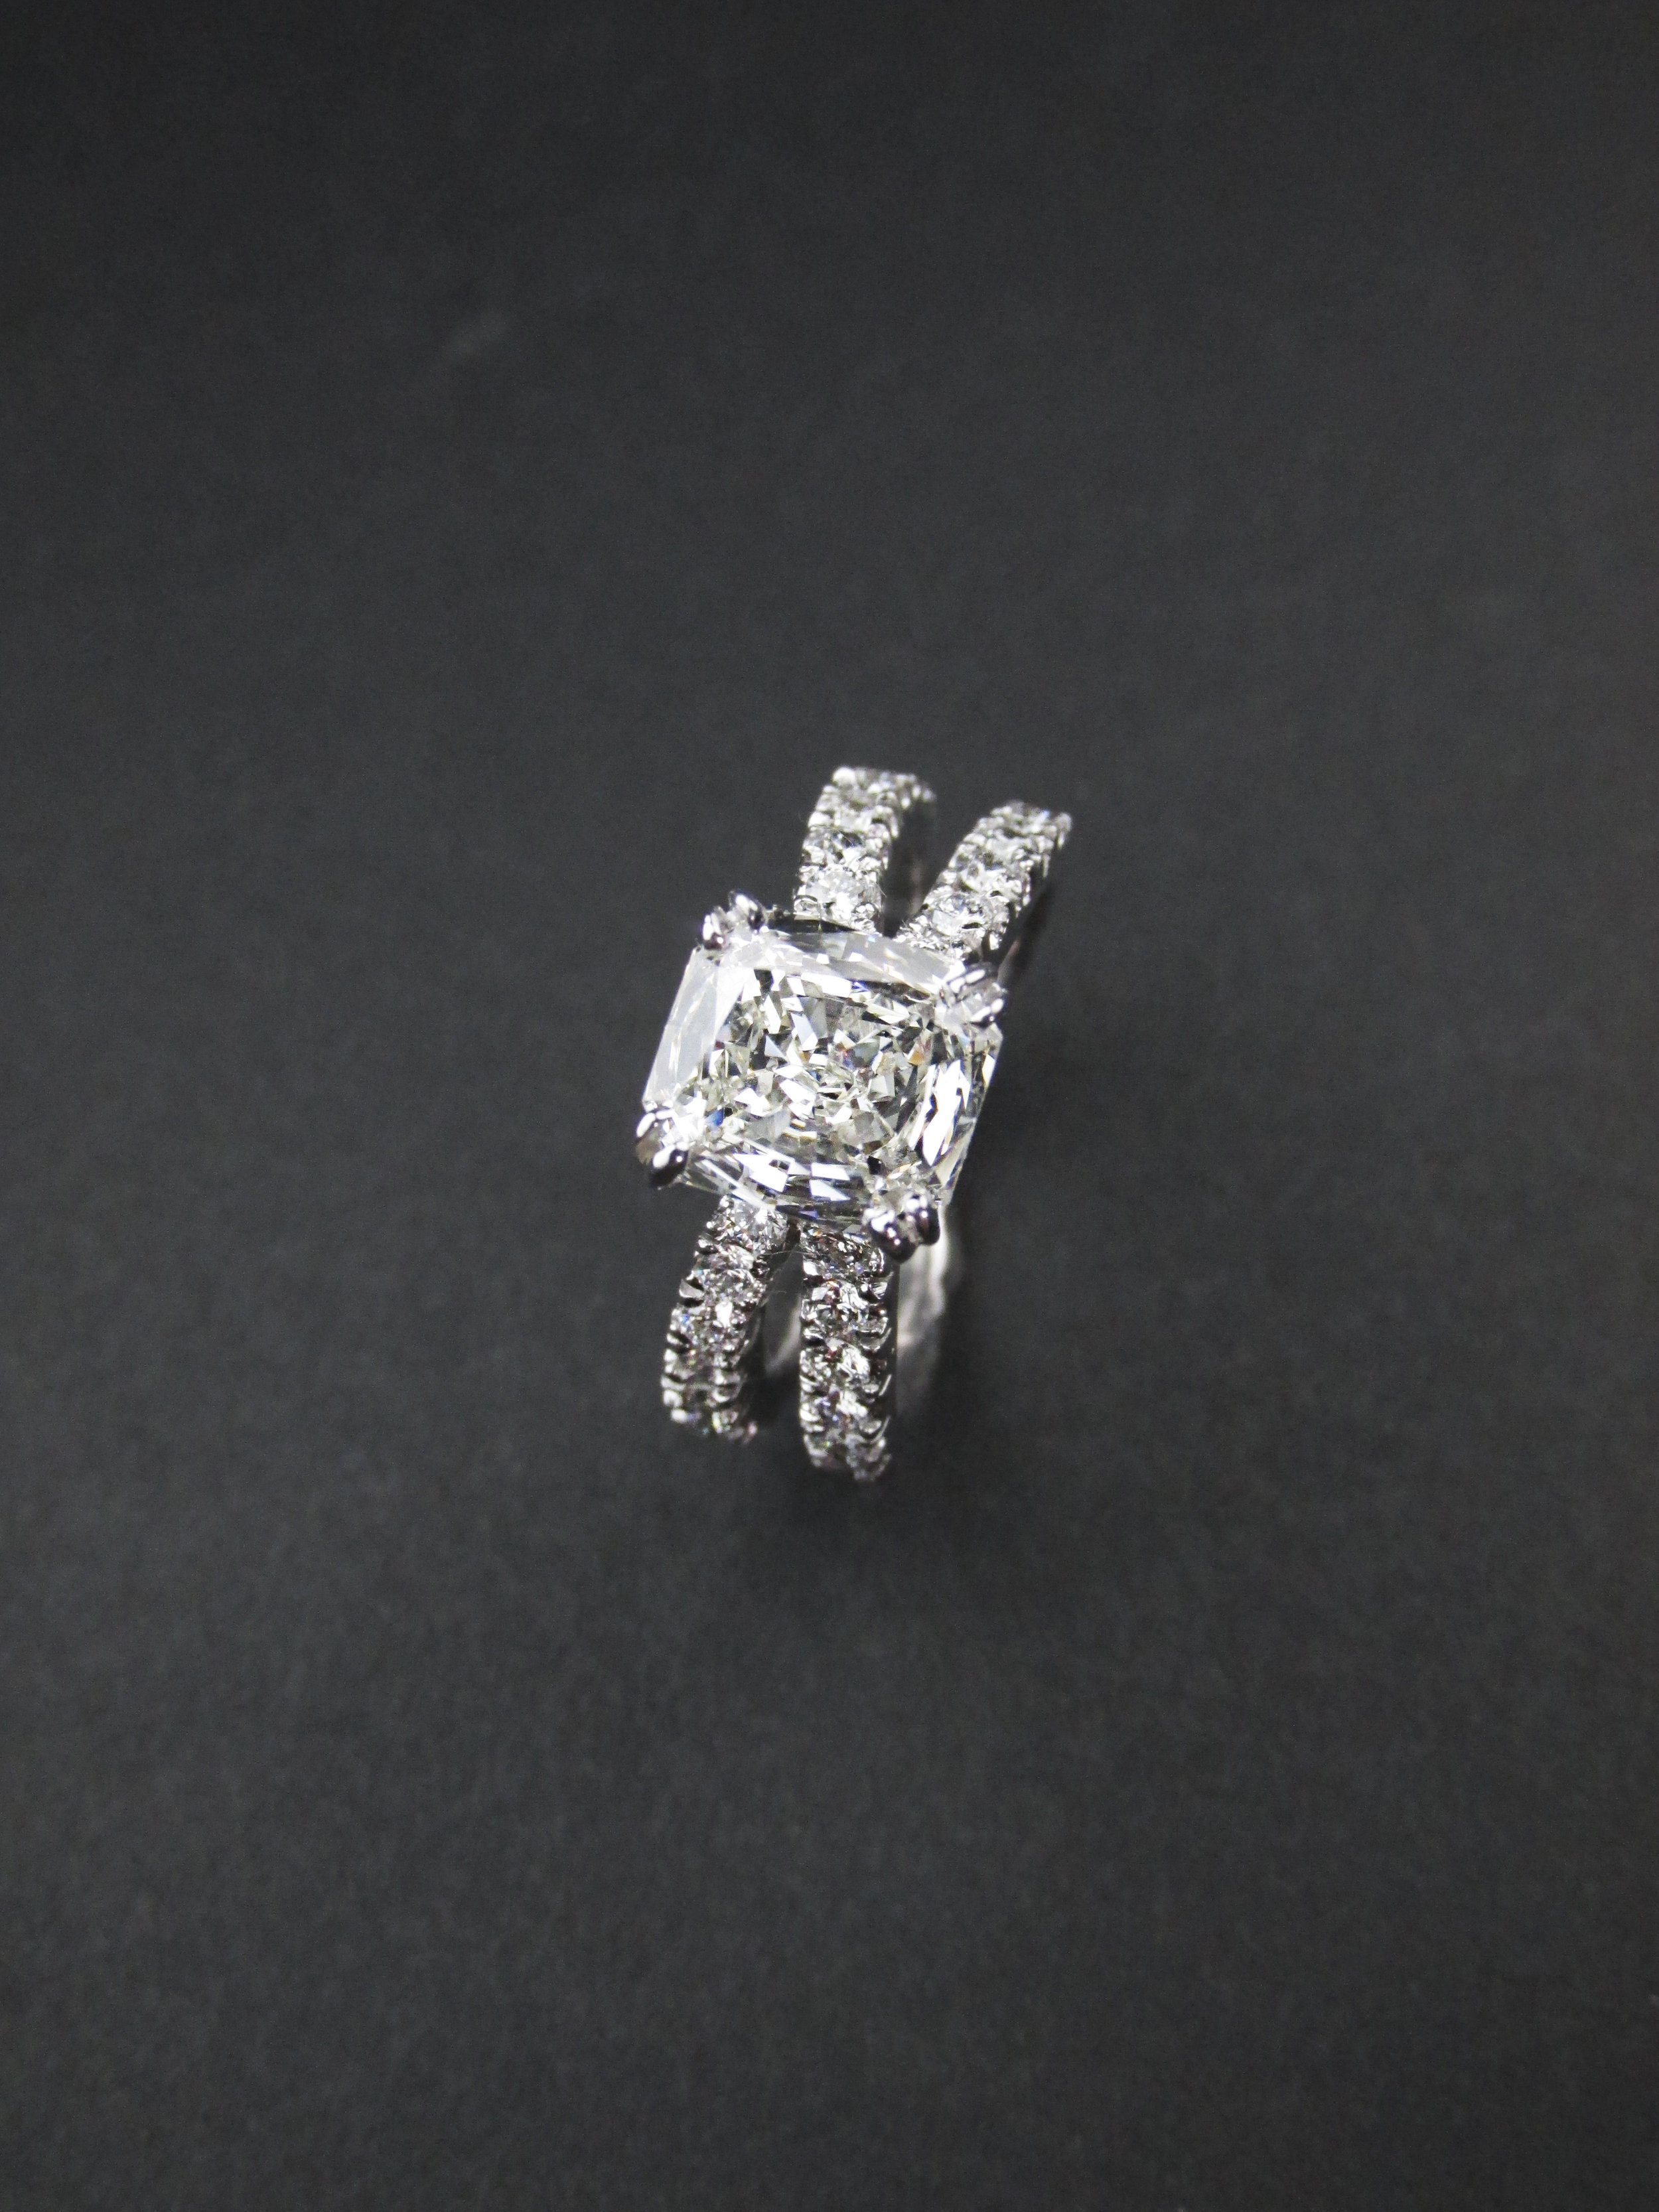 Criss Cross Engagement Ring with Radiant Diamond